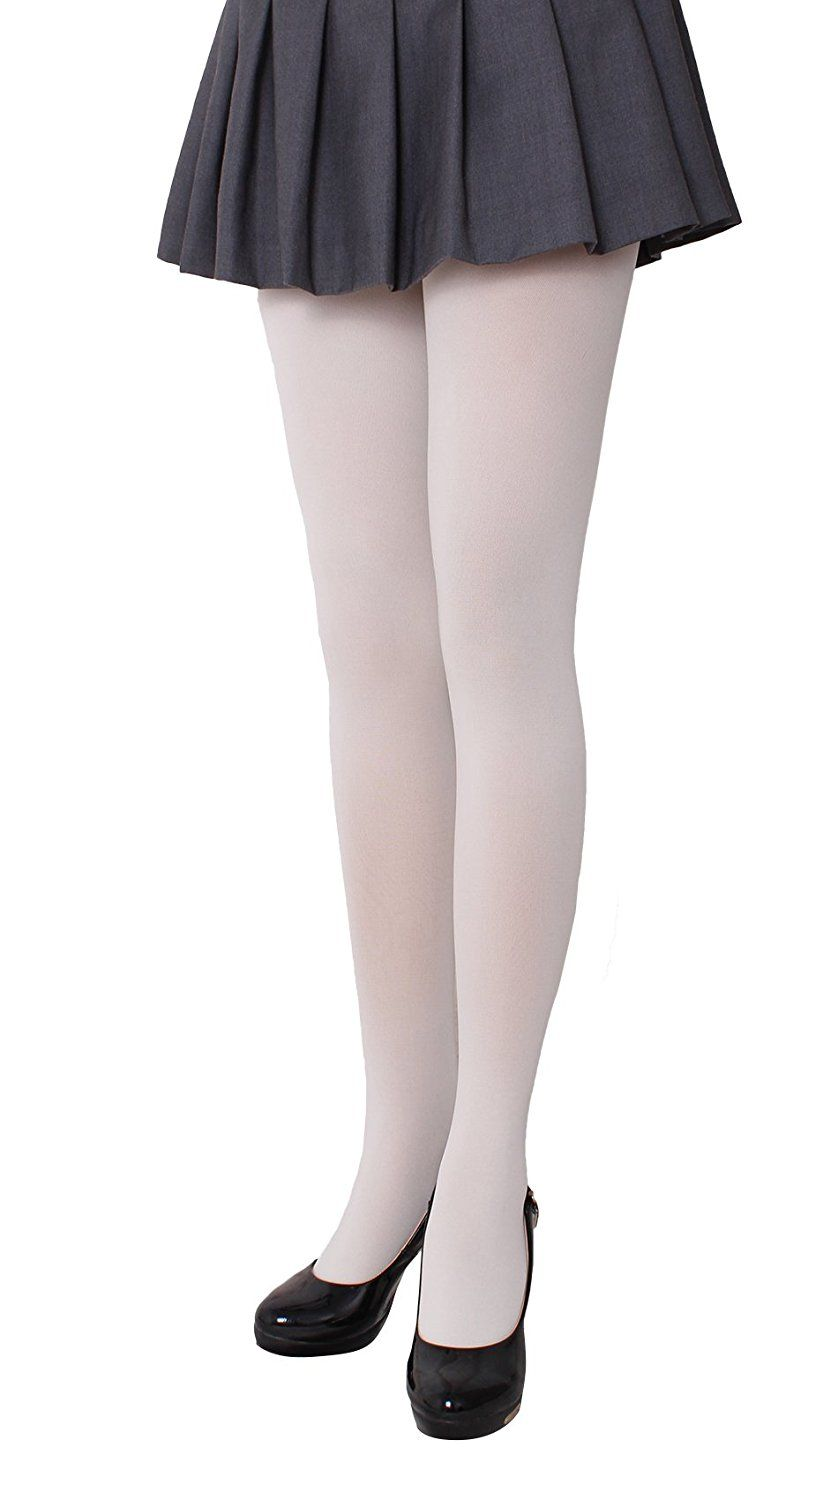 d676afc9f4fd6 Amazon.com: CozyWow Women's Solid Color Opaque Footed Tights Goldenrod:  Clothing